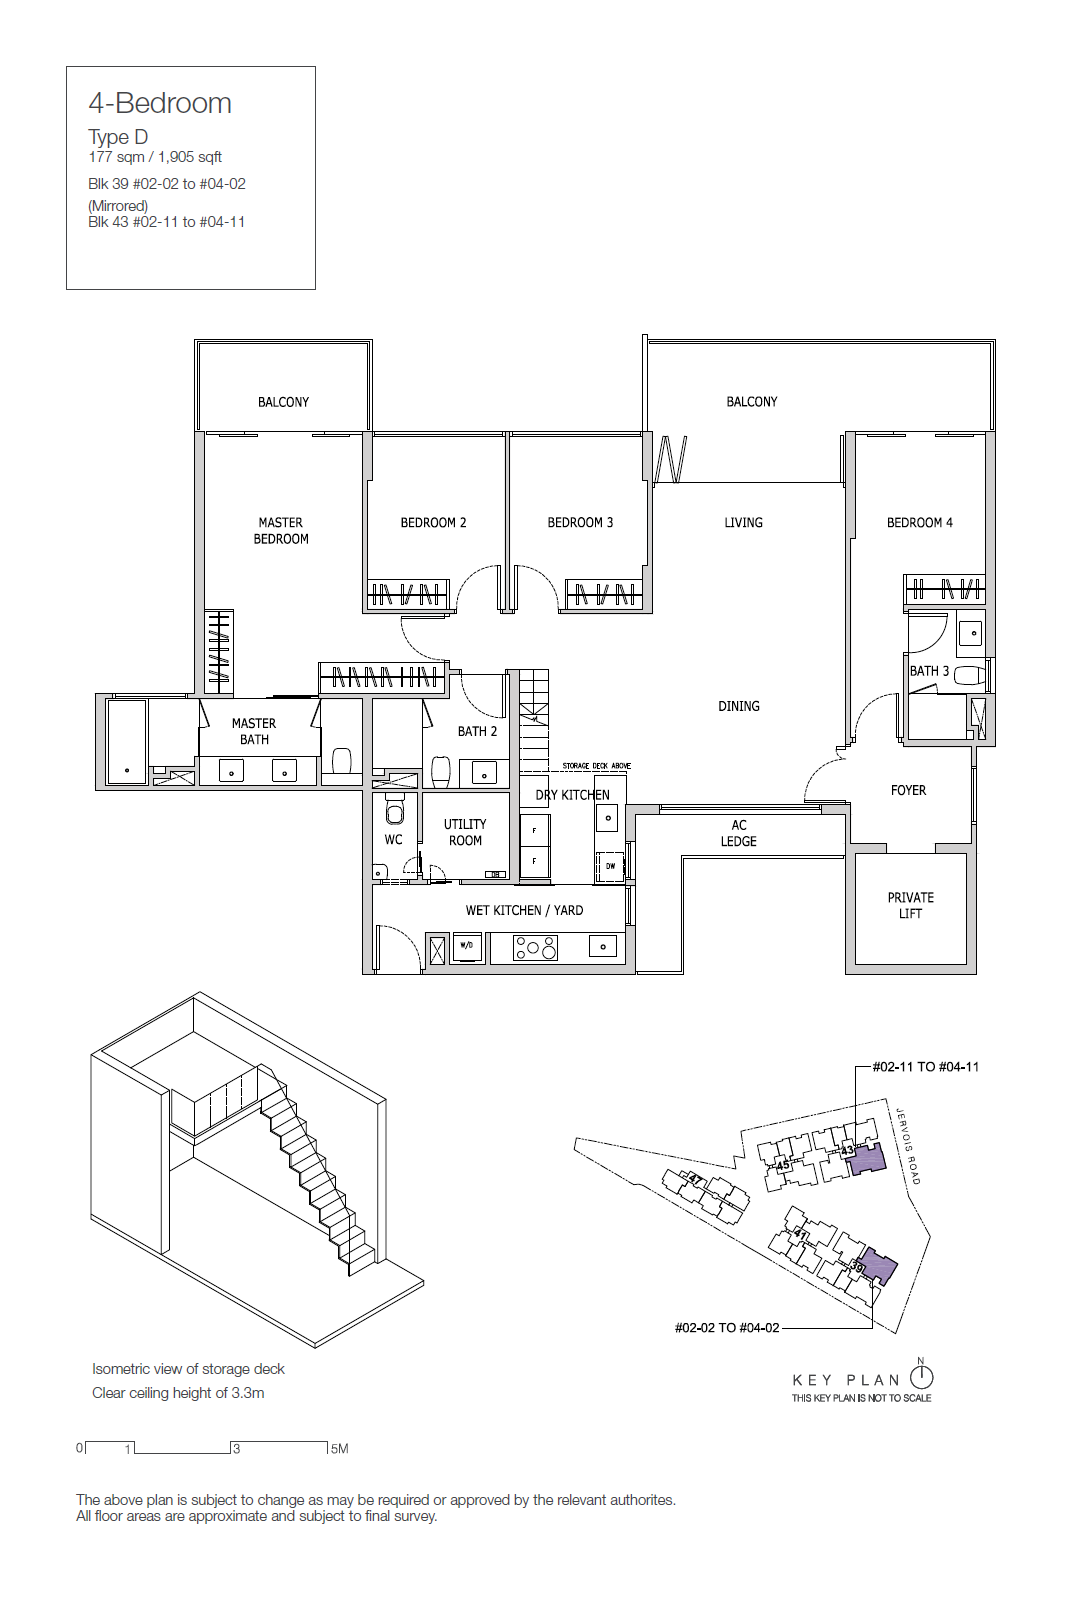 Type D1 - 4 Bedroom